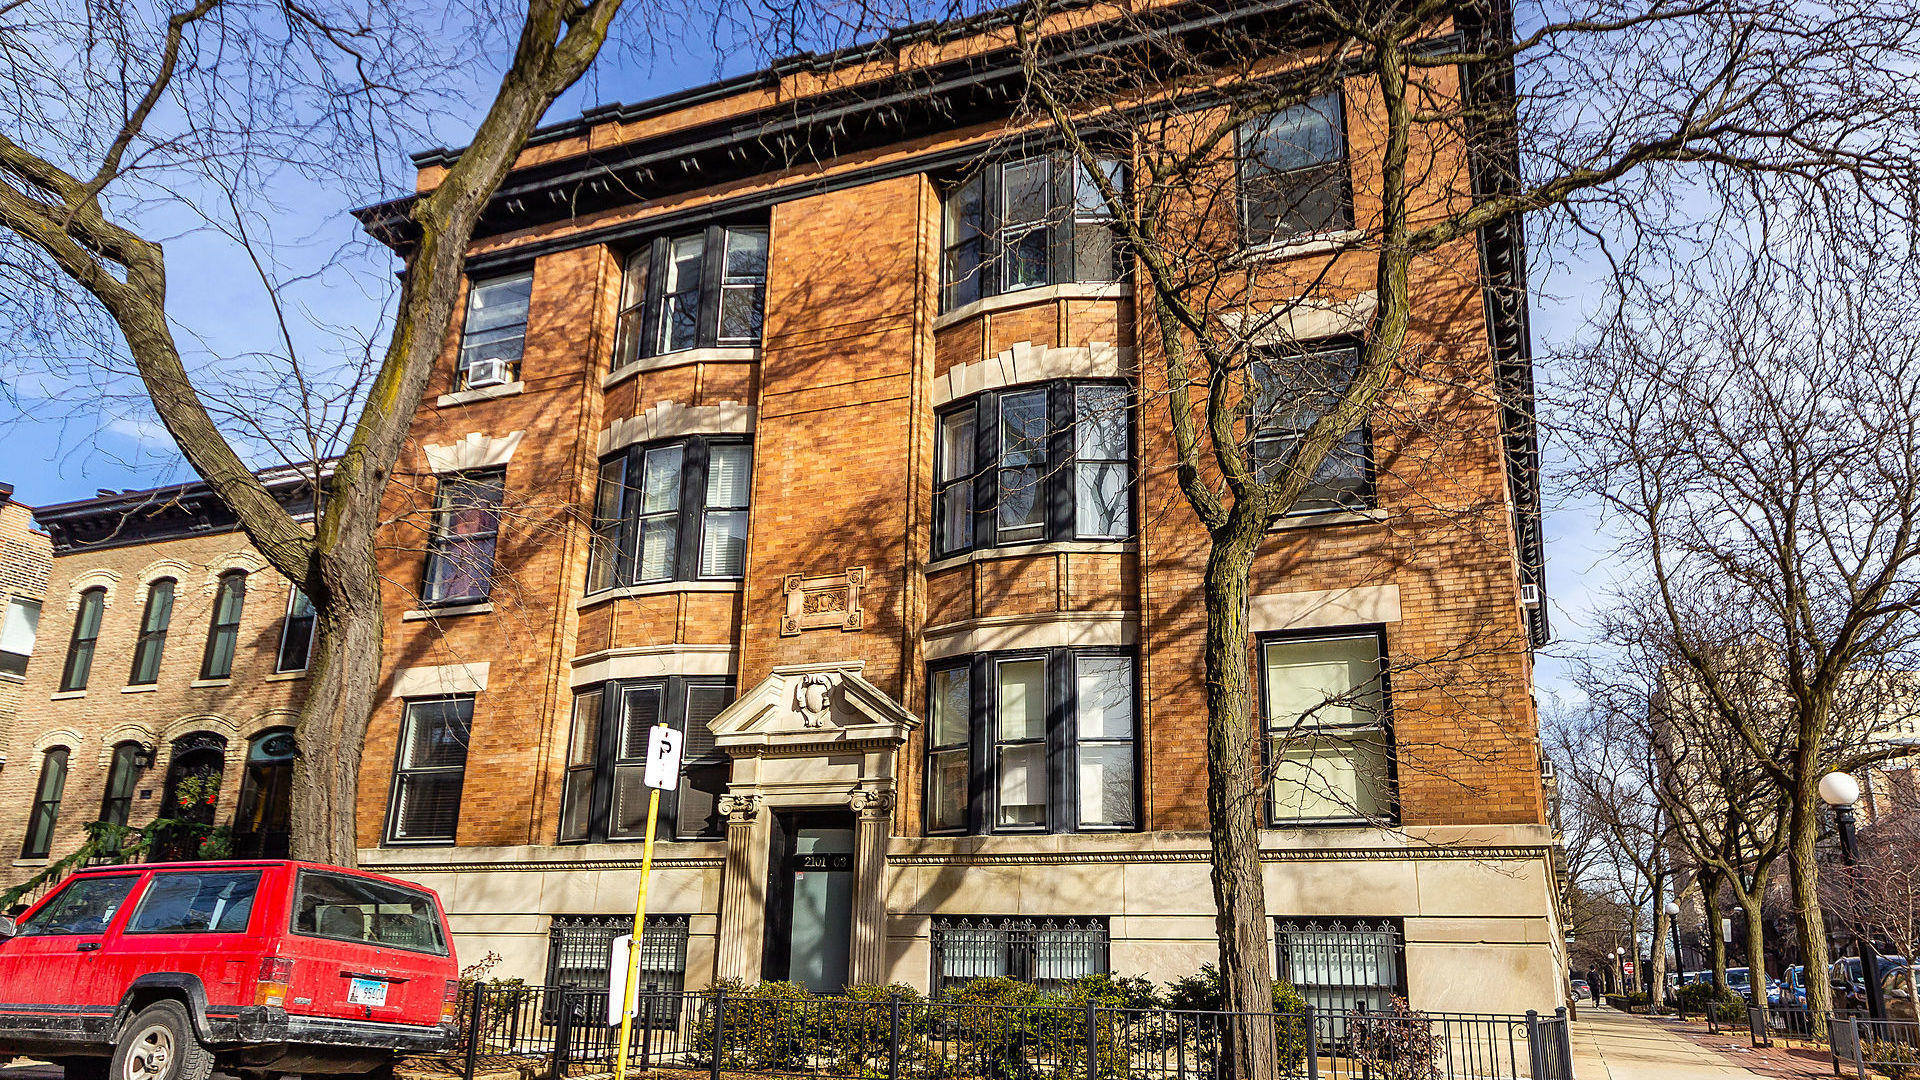 Is southeast Lincoln Park, walking distance to the Lakefront and Oz Park where you want to be? Then welcome home to this magnificent 2 bedroom / 2 bath condo in Lincoln Park! You will fall in love with this beautiful intimate building located among historic vintage properties. The building is also conveniently located between Lincoln and Clark walking distance to parks, shopping, nightlife, and public transportation. Once inside, you will love the open floor plan with abundant living space. The unit features beautiful built-ins, a fire place, gleaming hardwood floors, and lovely high end detail/finishes. The kitchen features stainless steel appliances and a granite counter top. The lower level contains both bedrooms together, a luxurious master bath appointed with gorgeous marble tile work, heated floors, and a steam shower! The in-unit laundry contains full-size front load washer and dryer. You will love the spacious patio and private fully built-out roof-top deck!